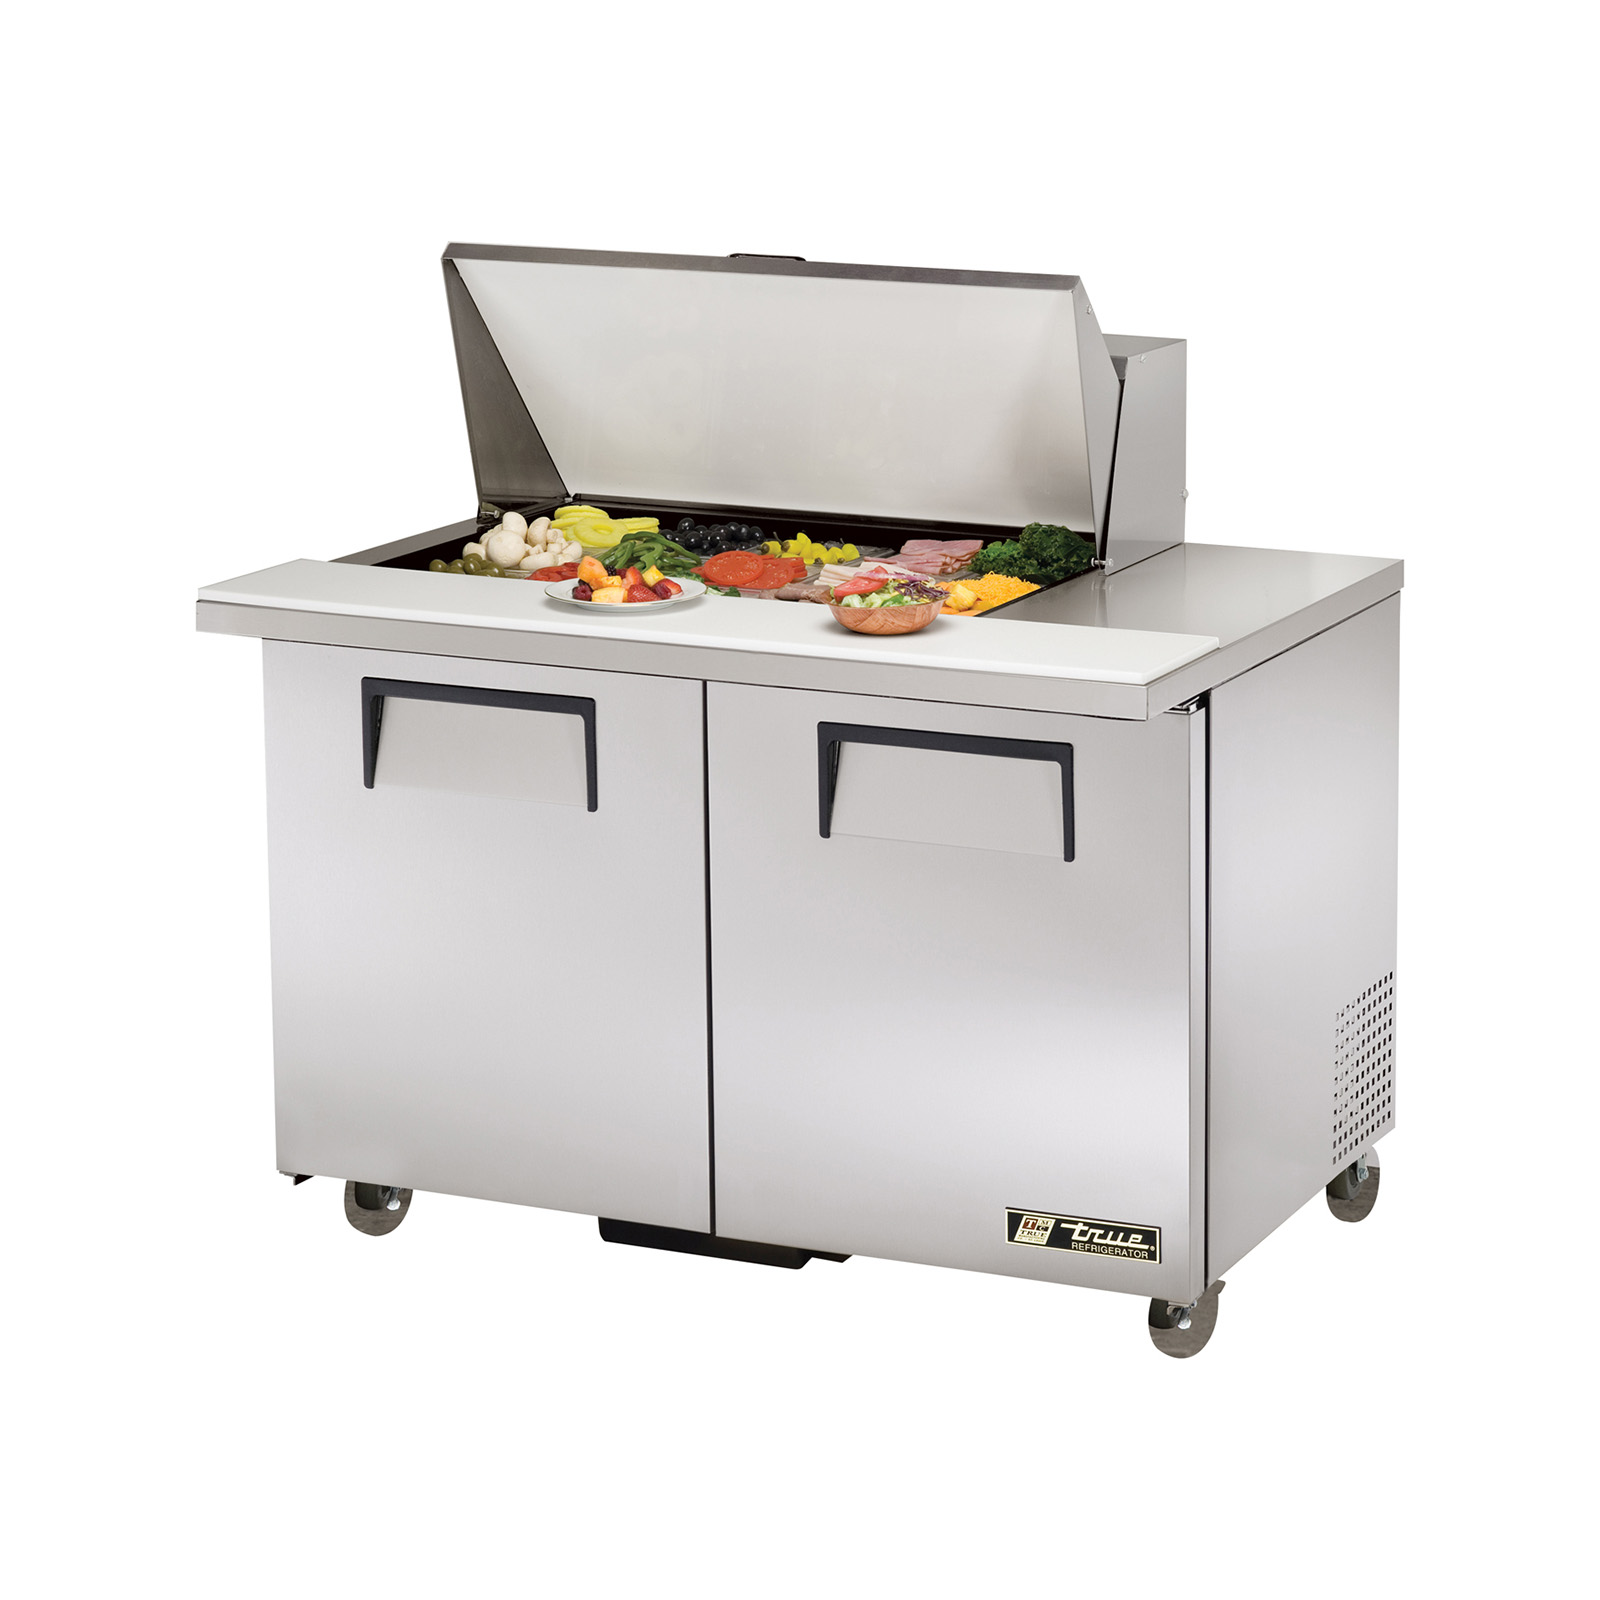 TSSU-48-15M-B-ADA True - ADA Compliant Mega Top Sandwich/Salad Unit (15) 1/6 size (4